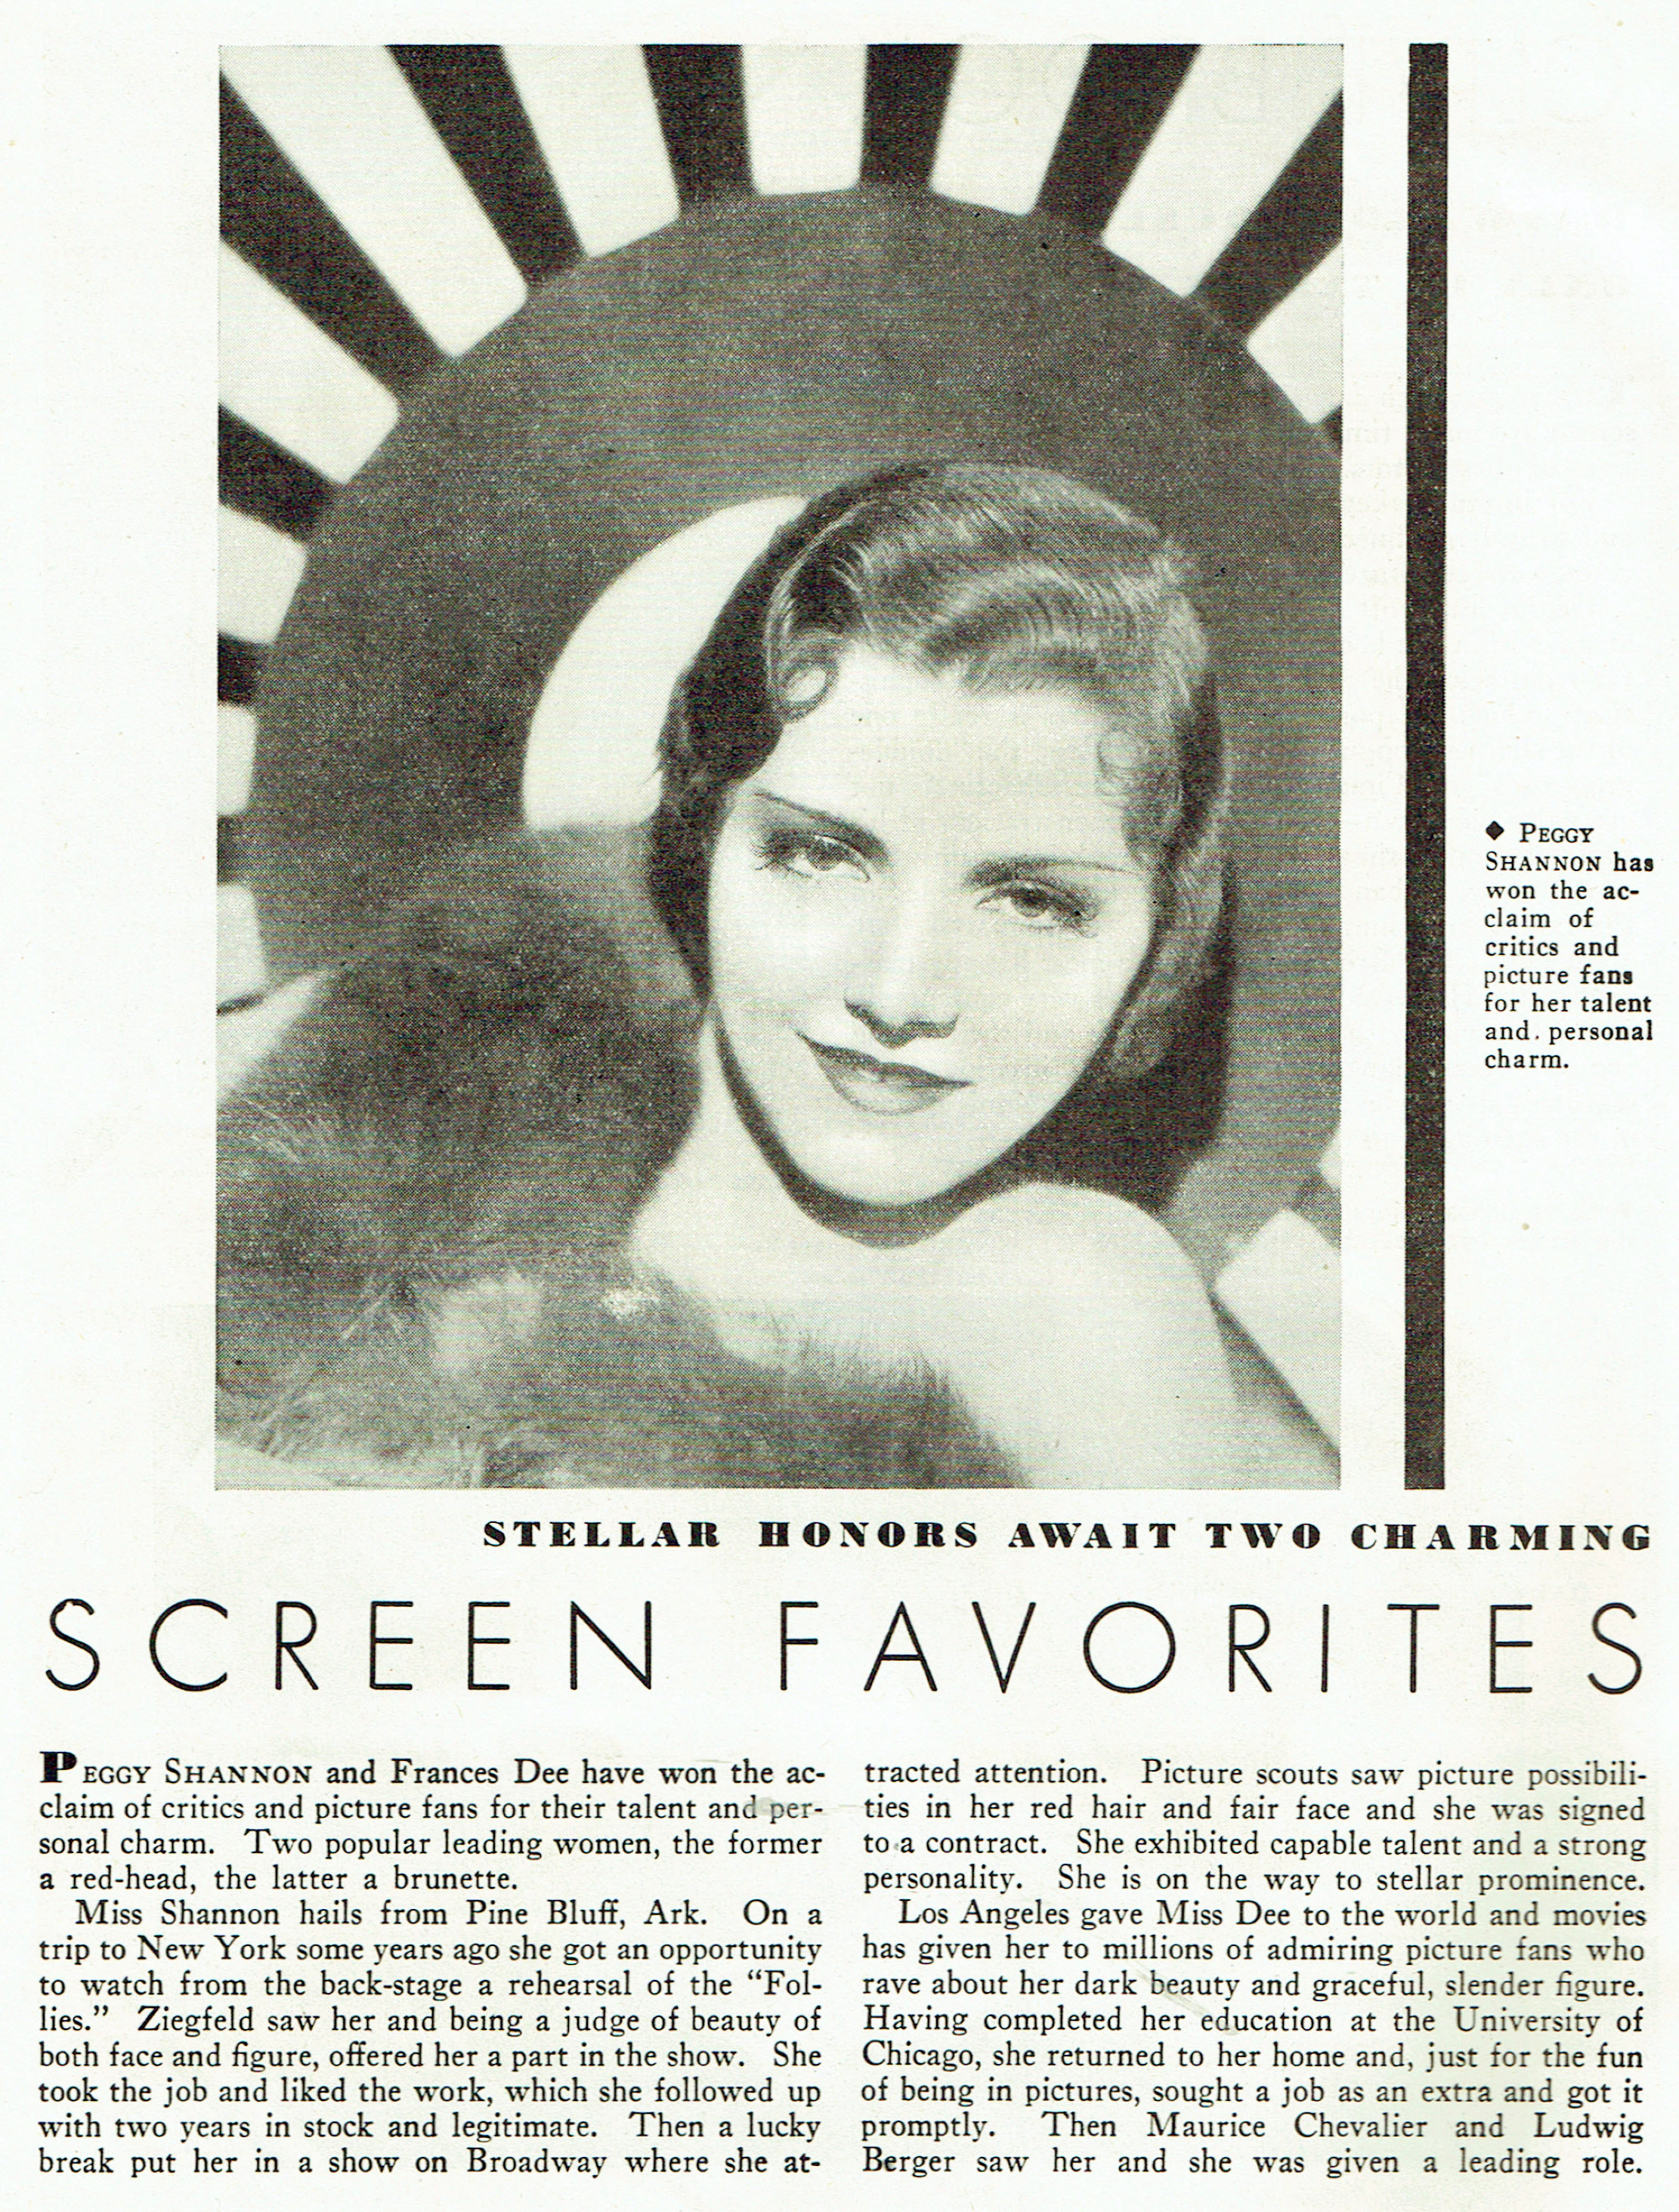 carole lombard publix theatre screen review april 1932na